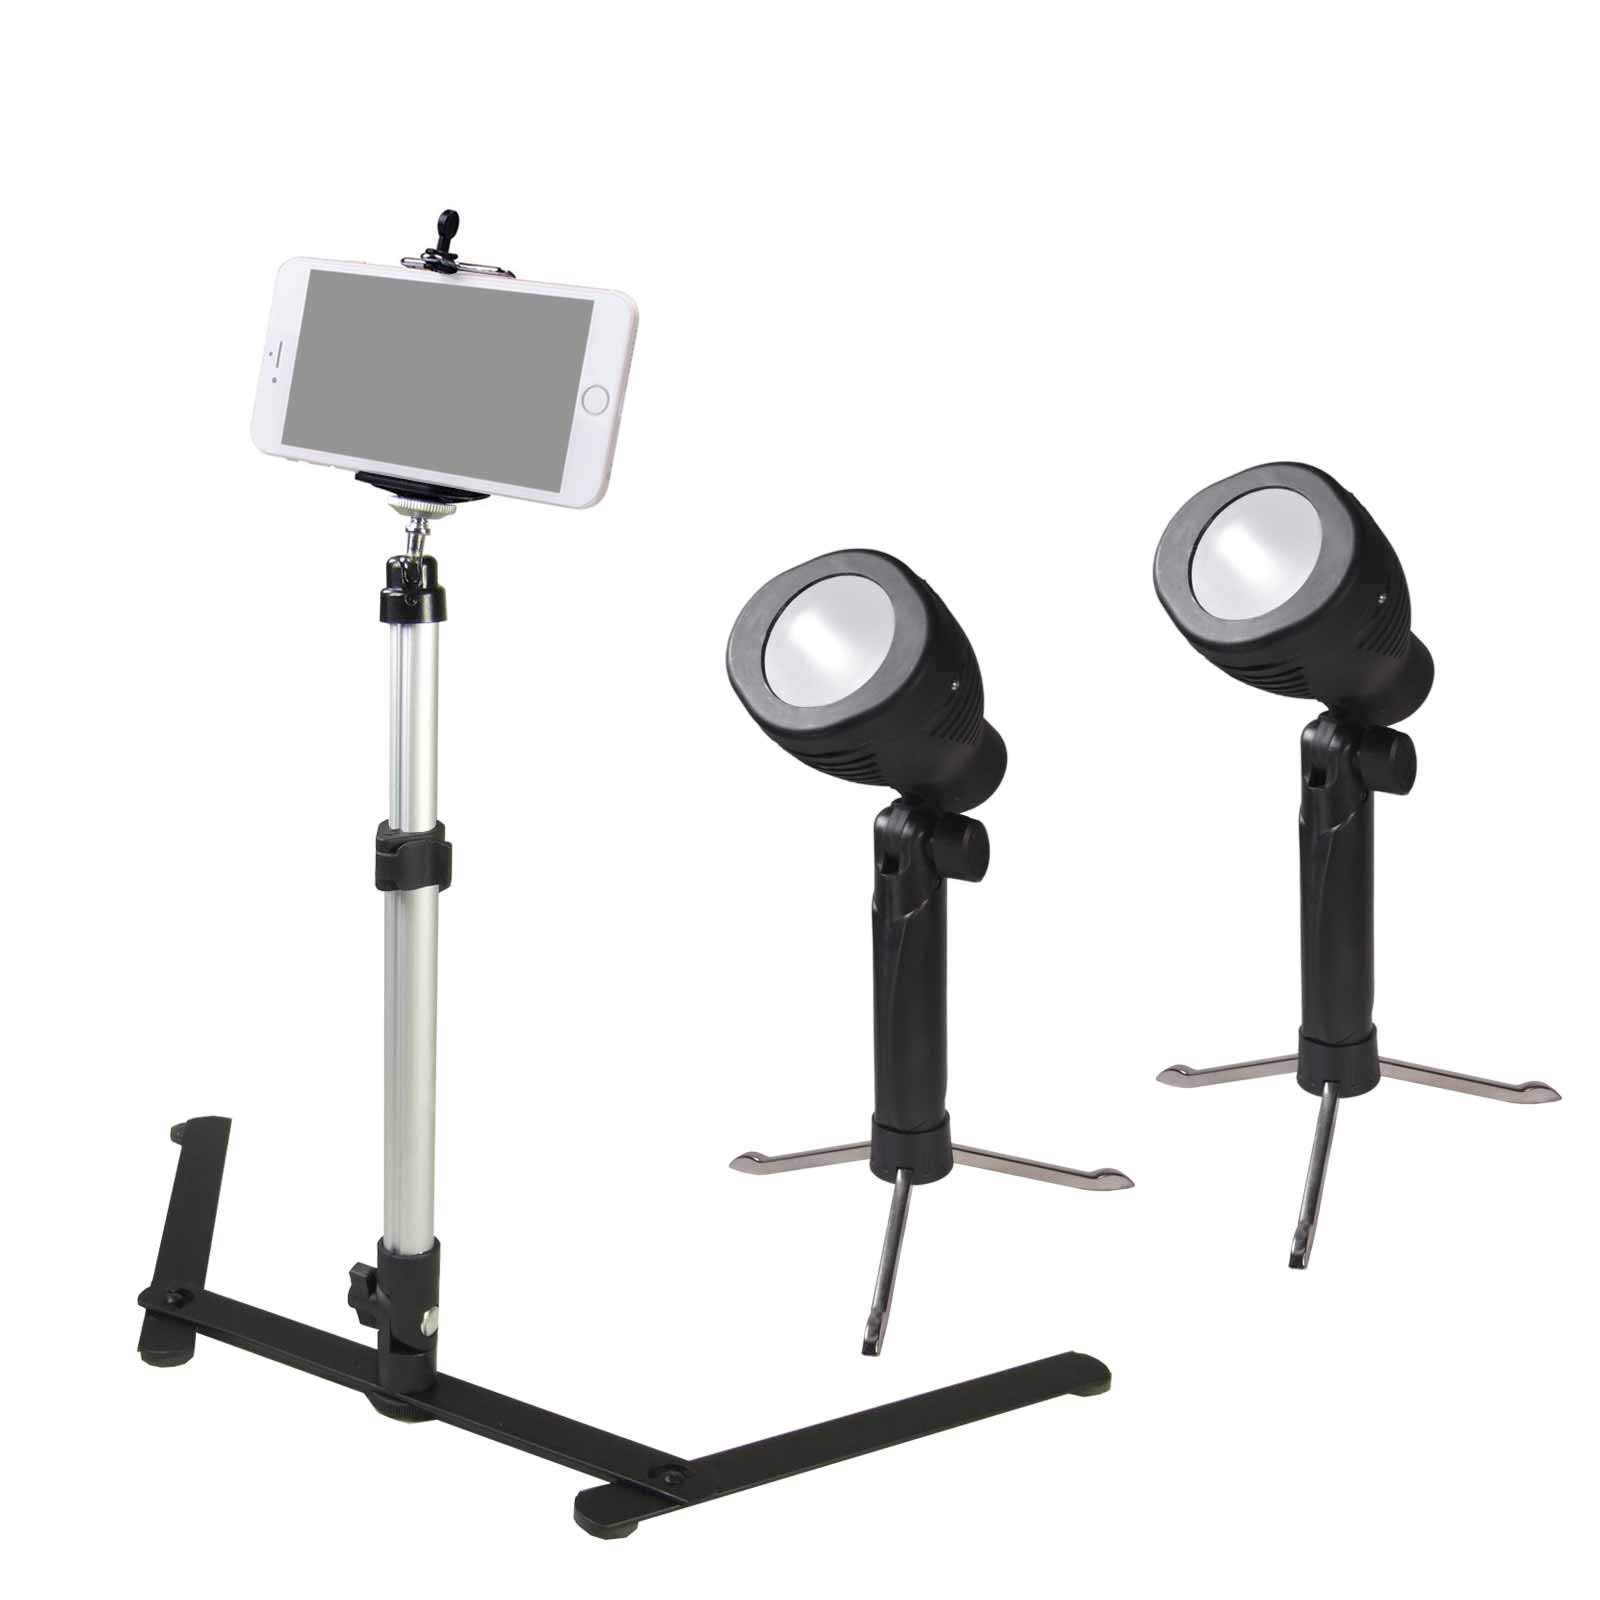 PBL Desktop Lighting Kit Bicolor with Phone Holder Camera Stand for Makeup YouTube Video Shooting Portrait Selfie Live Webcast Still Life Photography